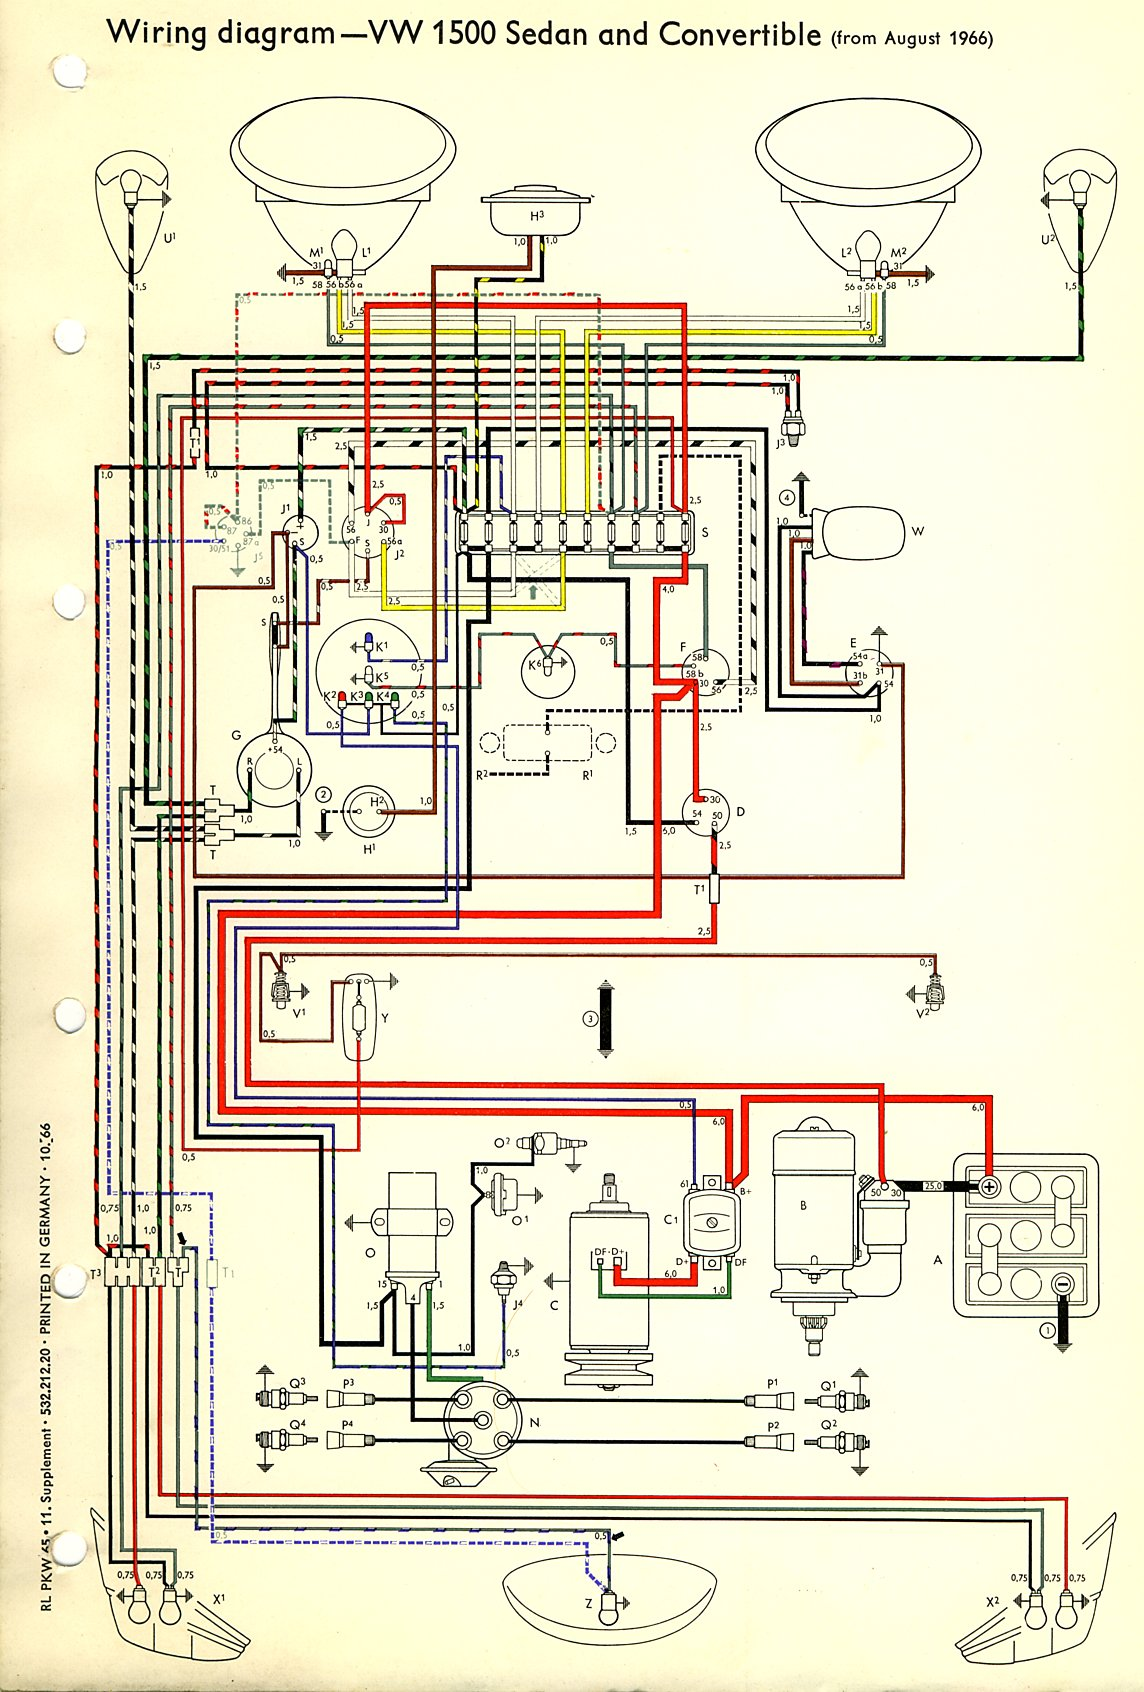 bug_67 1967 beetle wiring diagram thegoldenbug com 1973 vw wiring diagram at pacquiaovsvargaslive.co